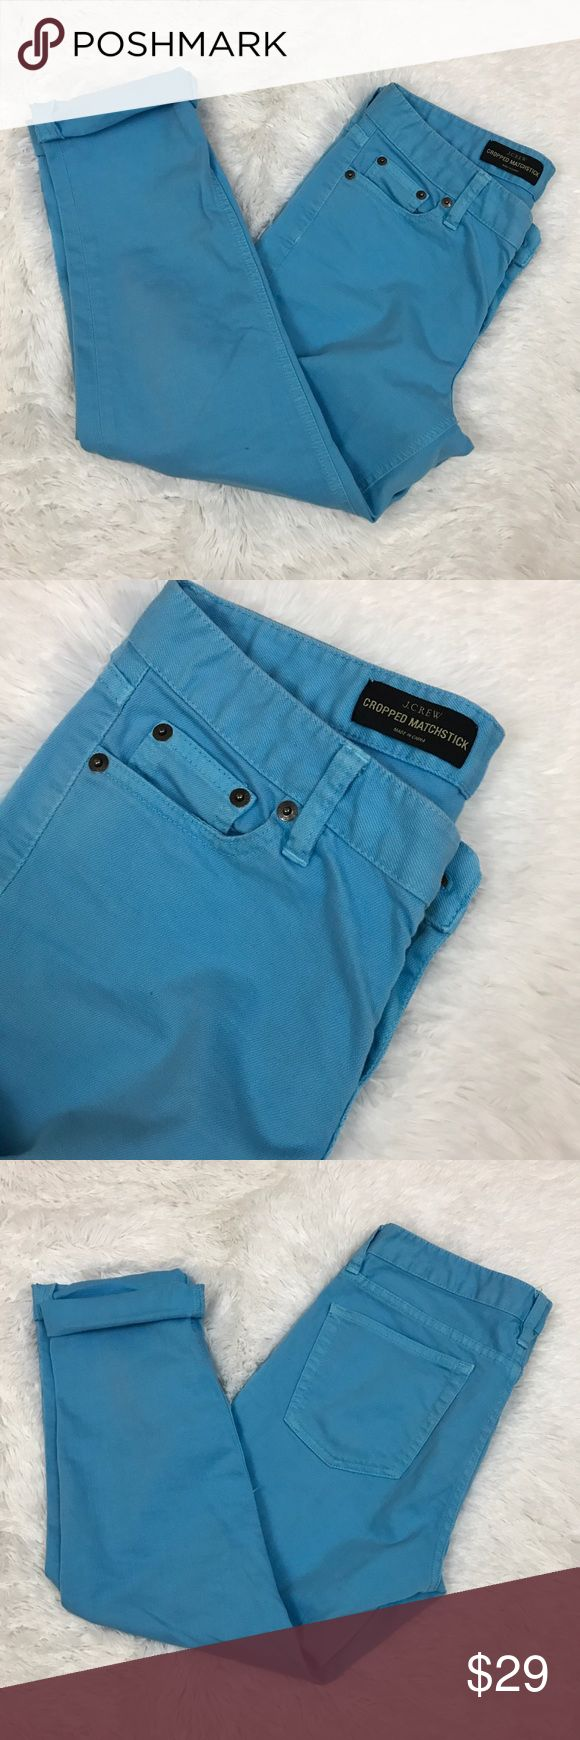 "J.Crew Matchstick Cropped blue jeans Sz 28, 396 These J.Crew cropped matchstick style bright blue jeans are a fun spring color! A closet staple in a fun bright color! They are a size 28 and measure 16"" flat across the waist with a rise of 8"" and an inseam of 22""-25"" depending on if you cuff them or not.  They are in good preowned condition with one small faint spot on the leg( see last image). J. Crew Jeans Ankle & Cropped"